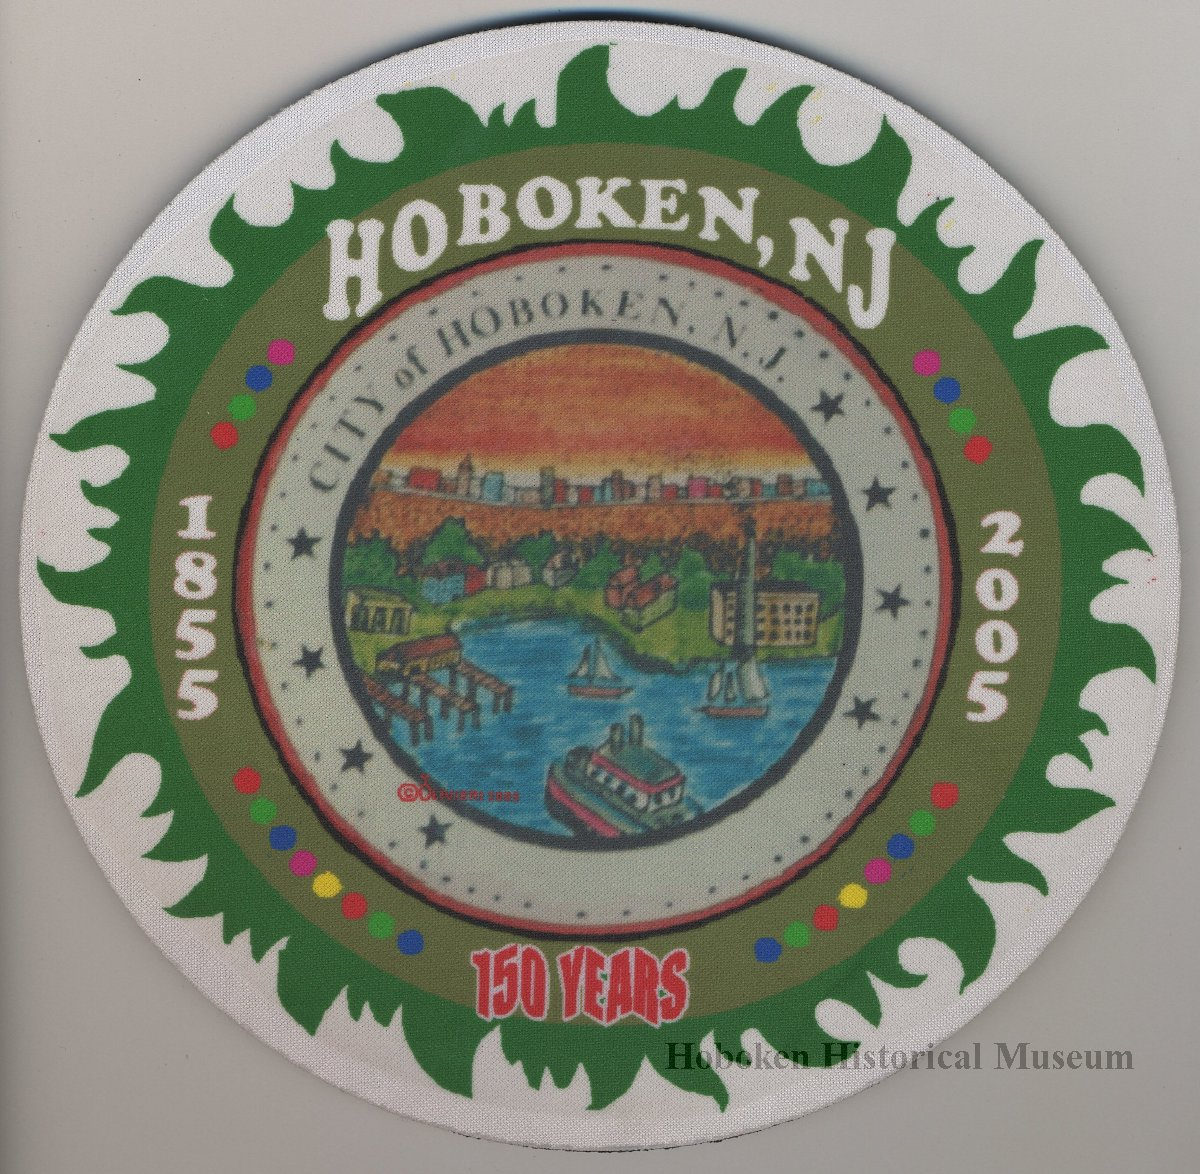 150th anniversary of hoboken image of computer mouse pad city of hoboken seal and text hoboken n j 1855